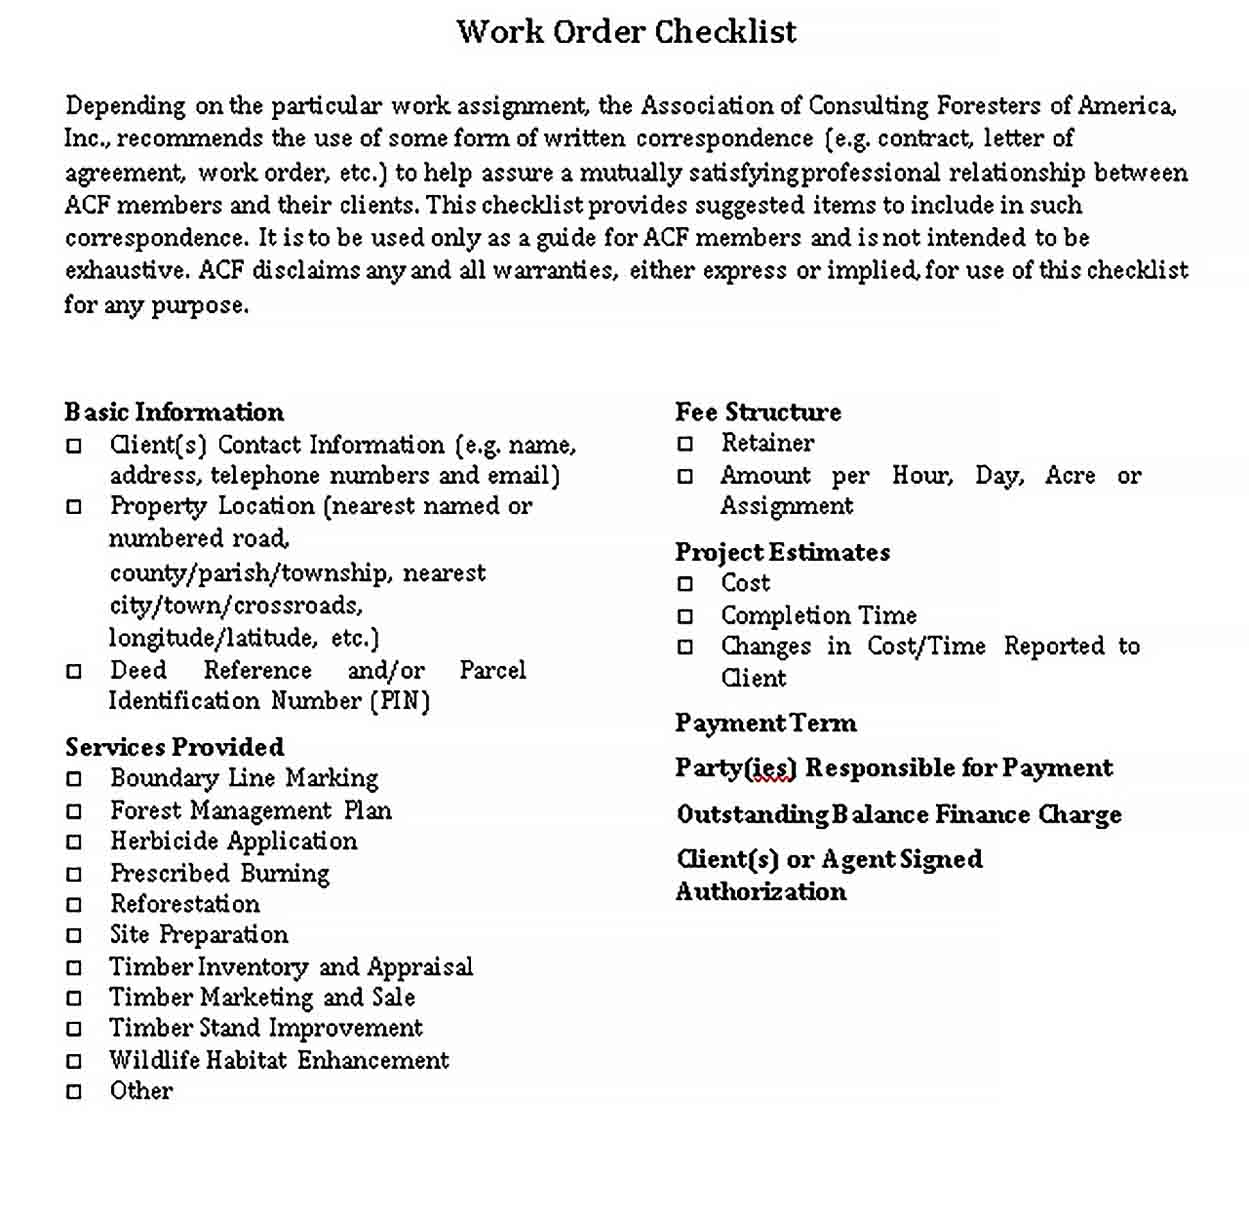 Work Checklist Template